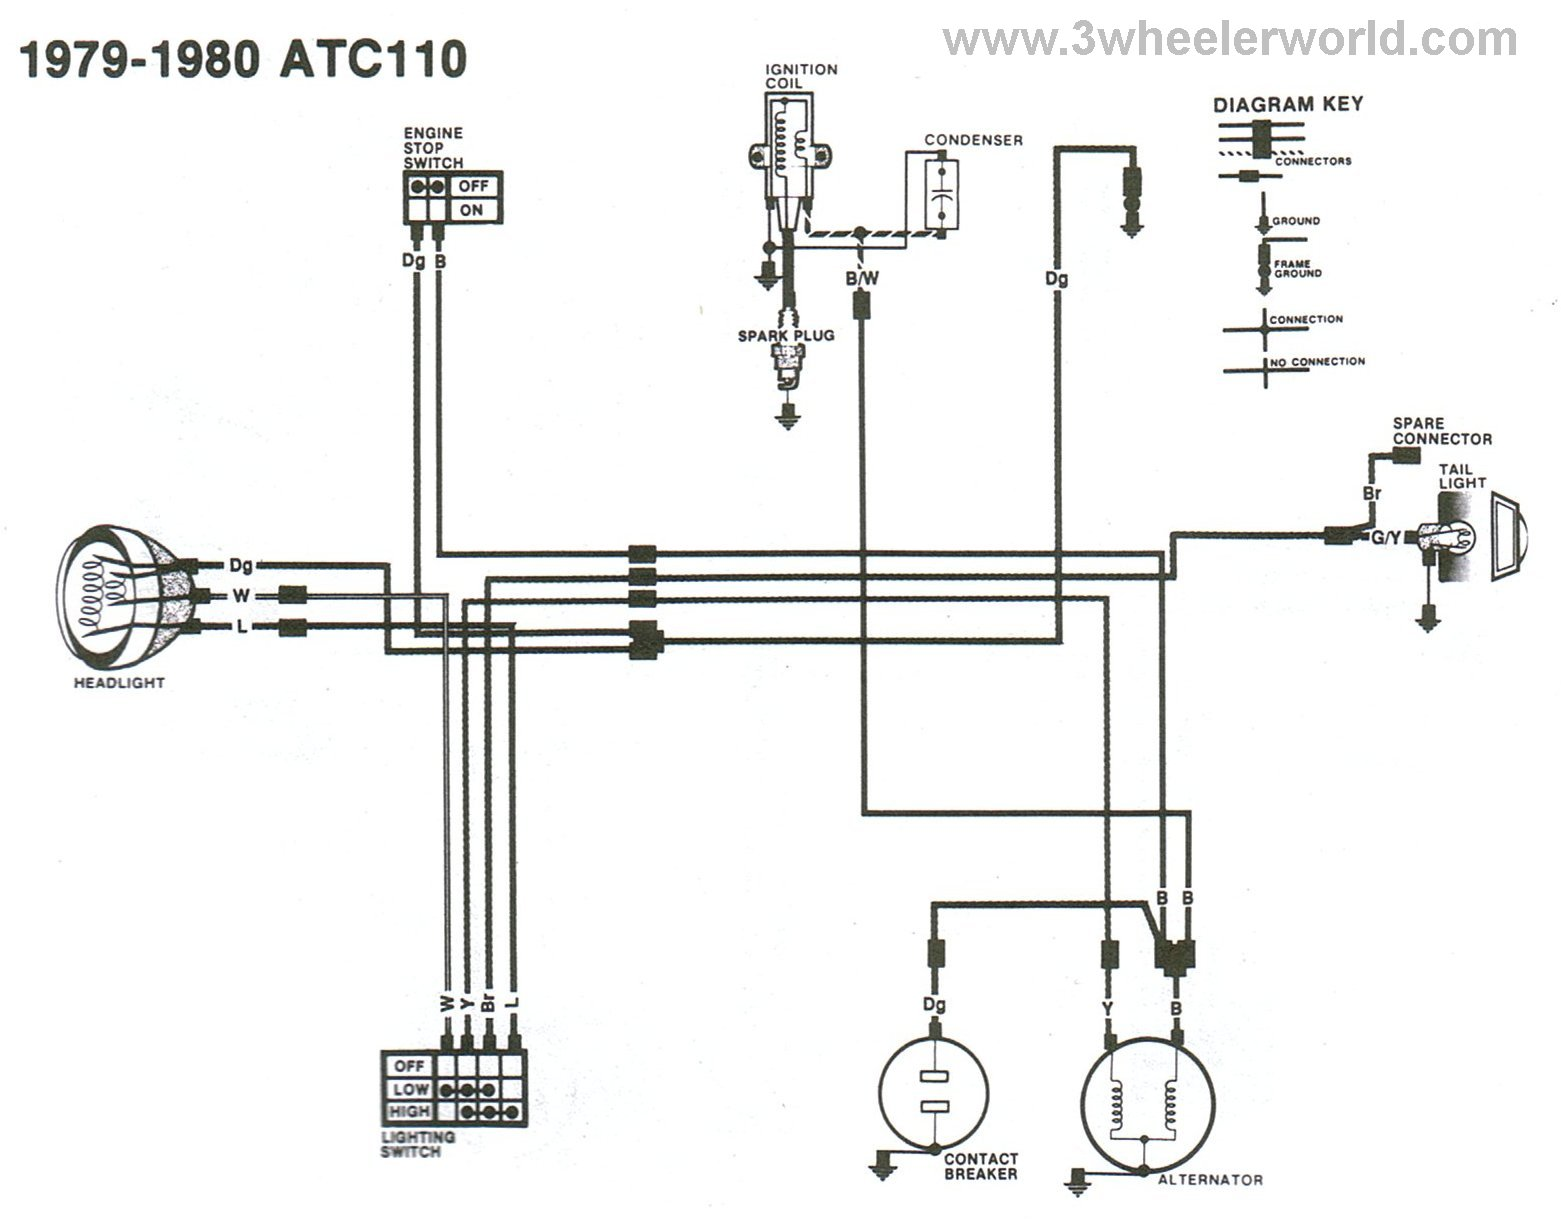 3wheeler World Honda Atc Wiring Diagrams Diagram 1989 Data Article Preview